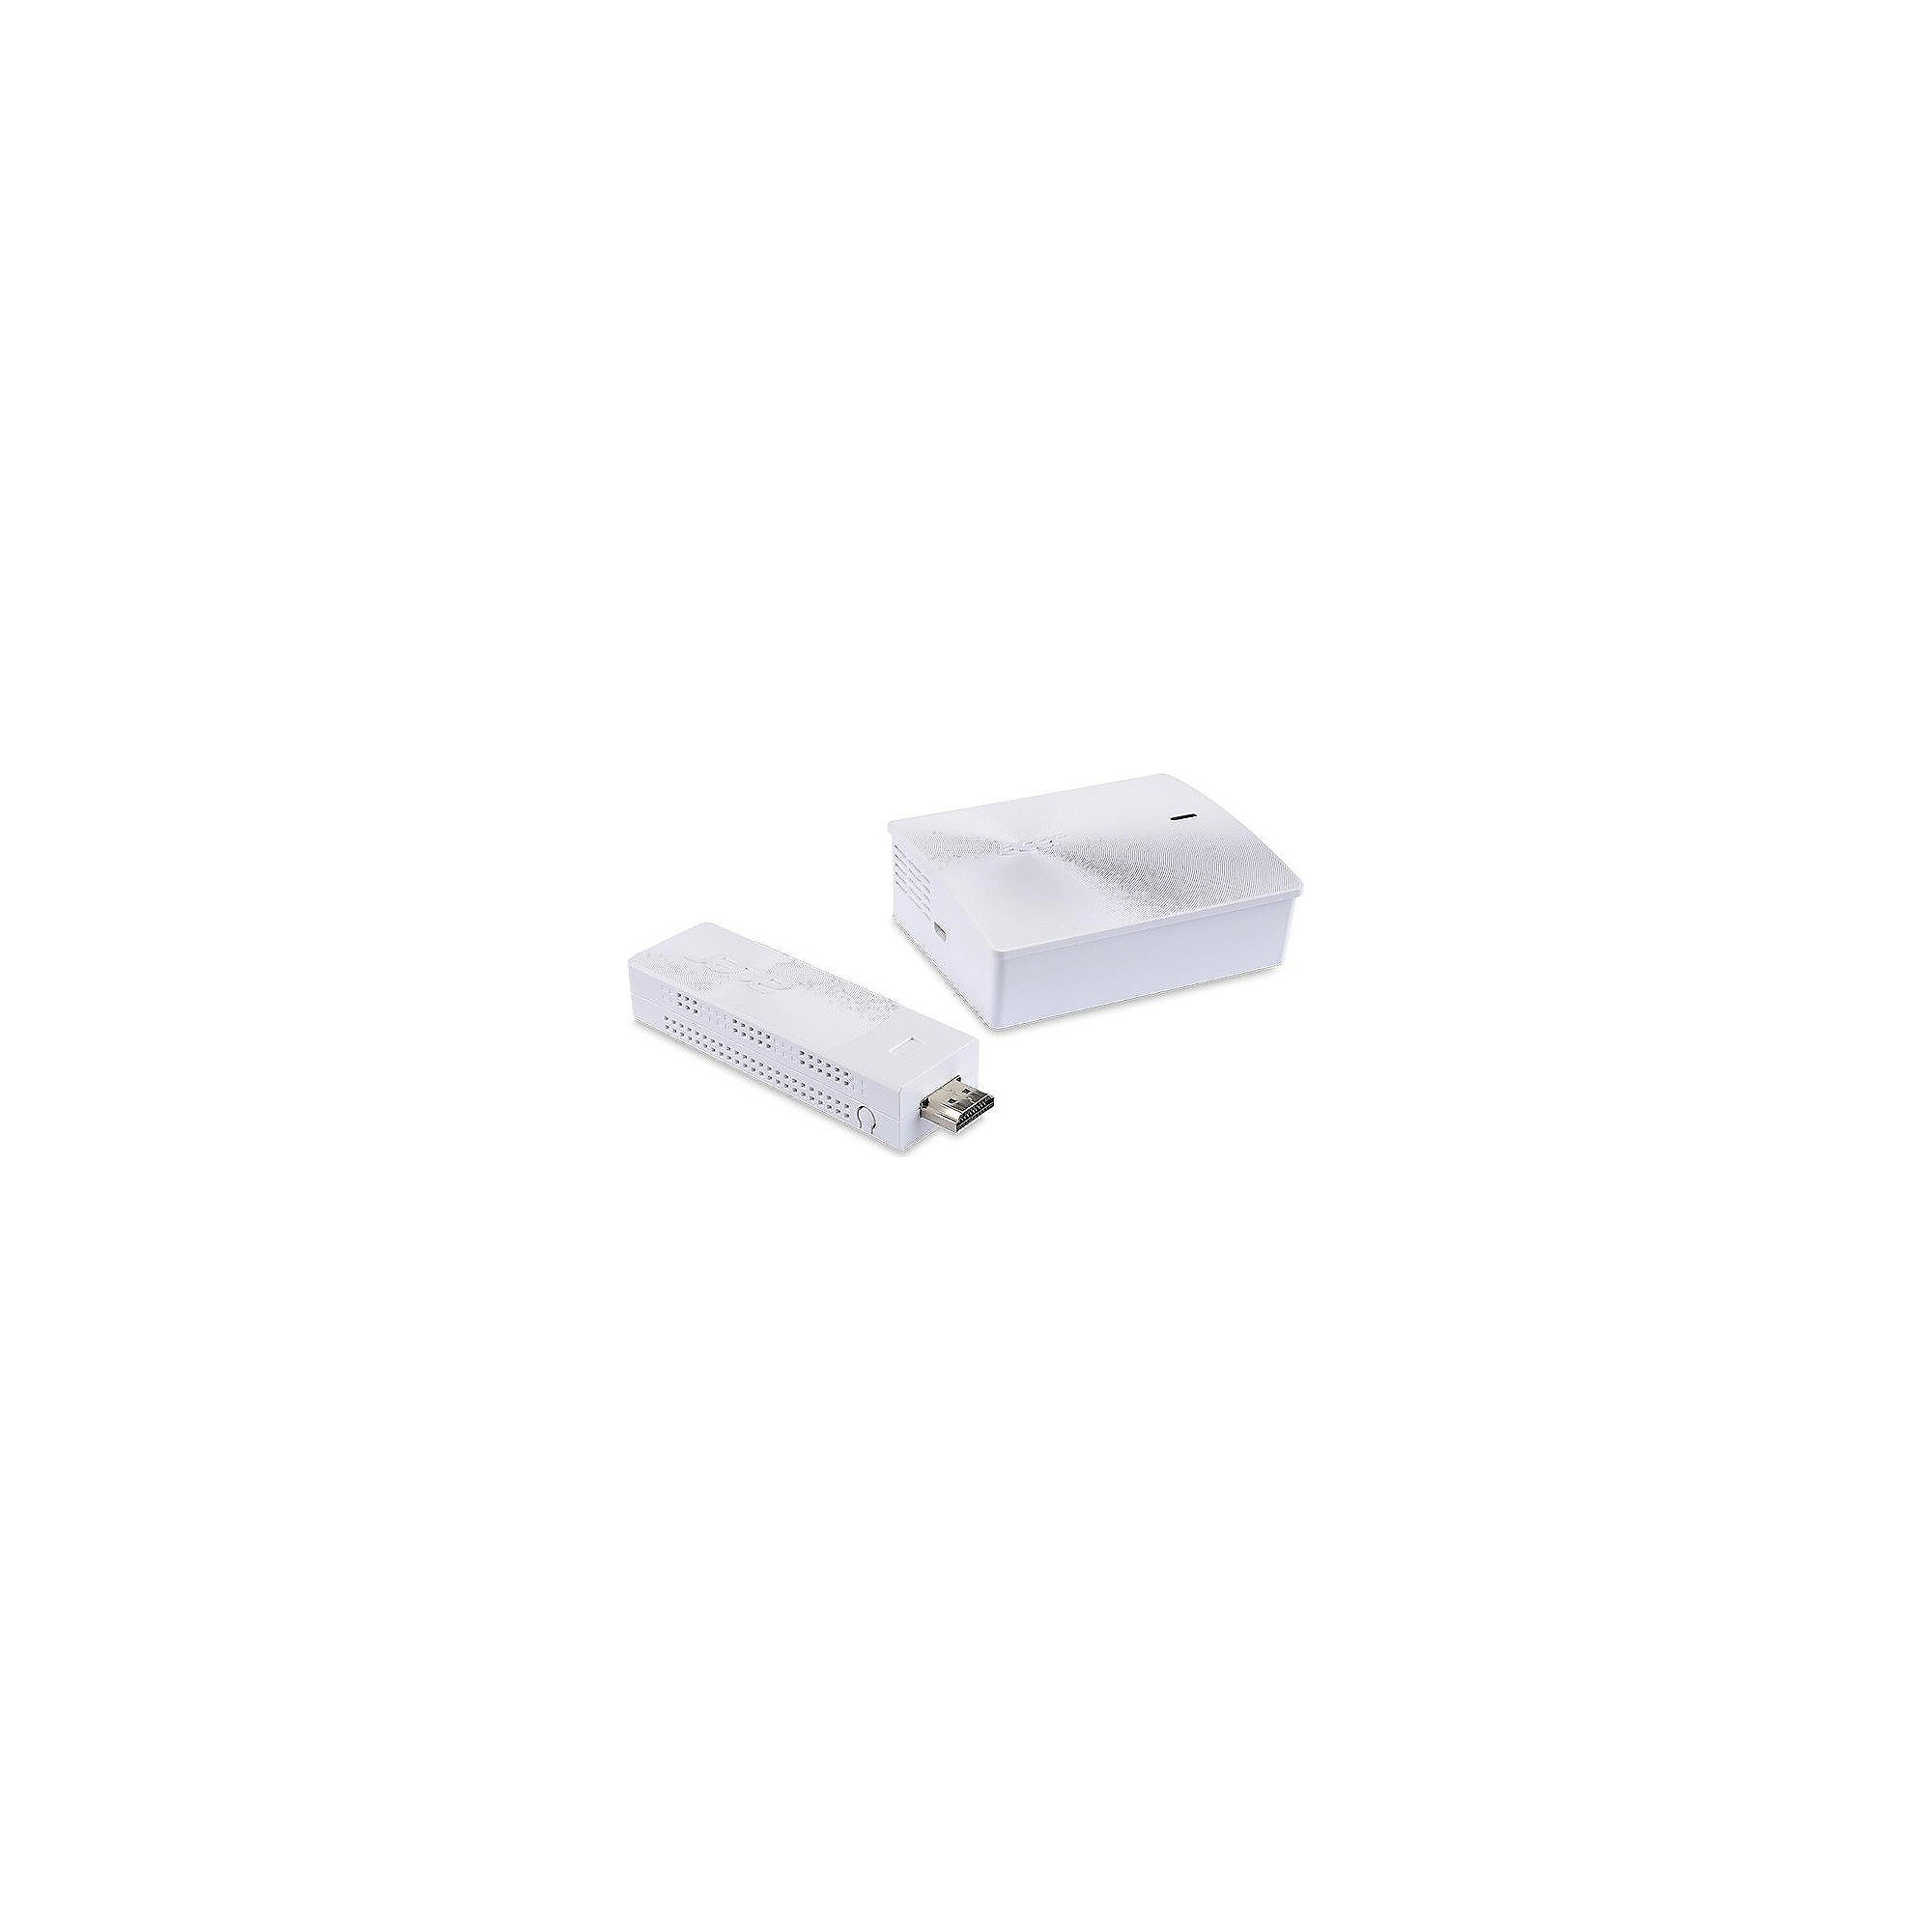 Acer WirelessHD-Kit Adapter MWiHD1 (MC.JKY11.009)